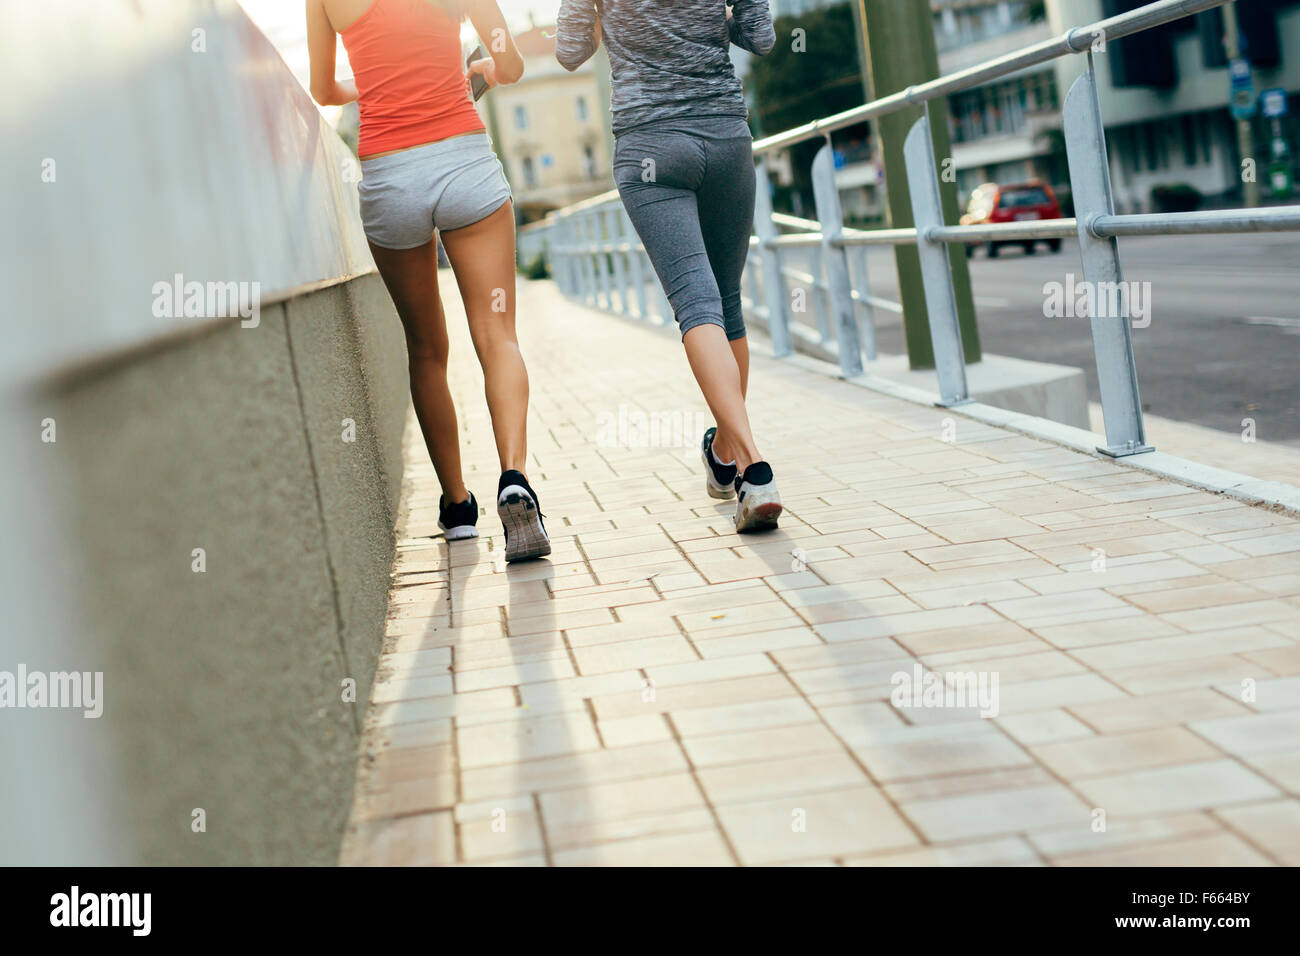 Two women exercising by jogging in the city while sun is setting - Stock Image